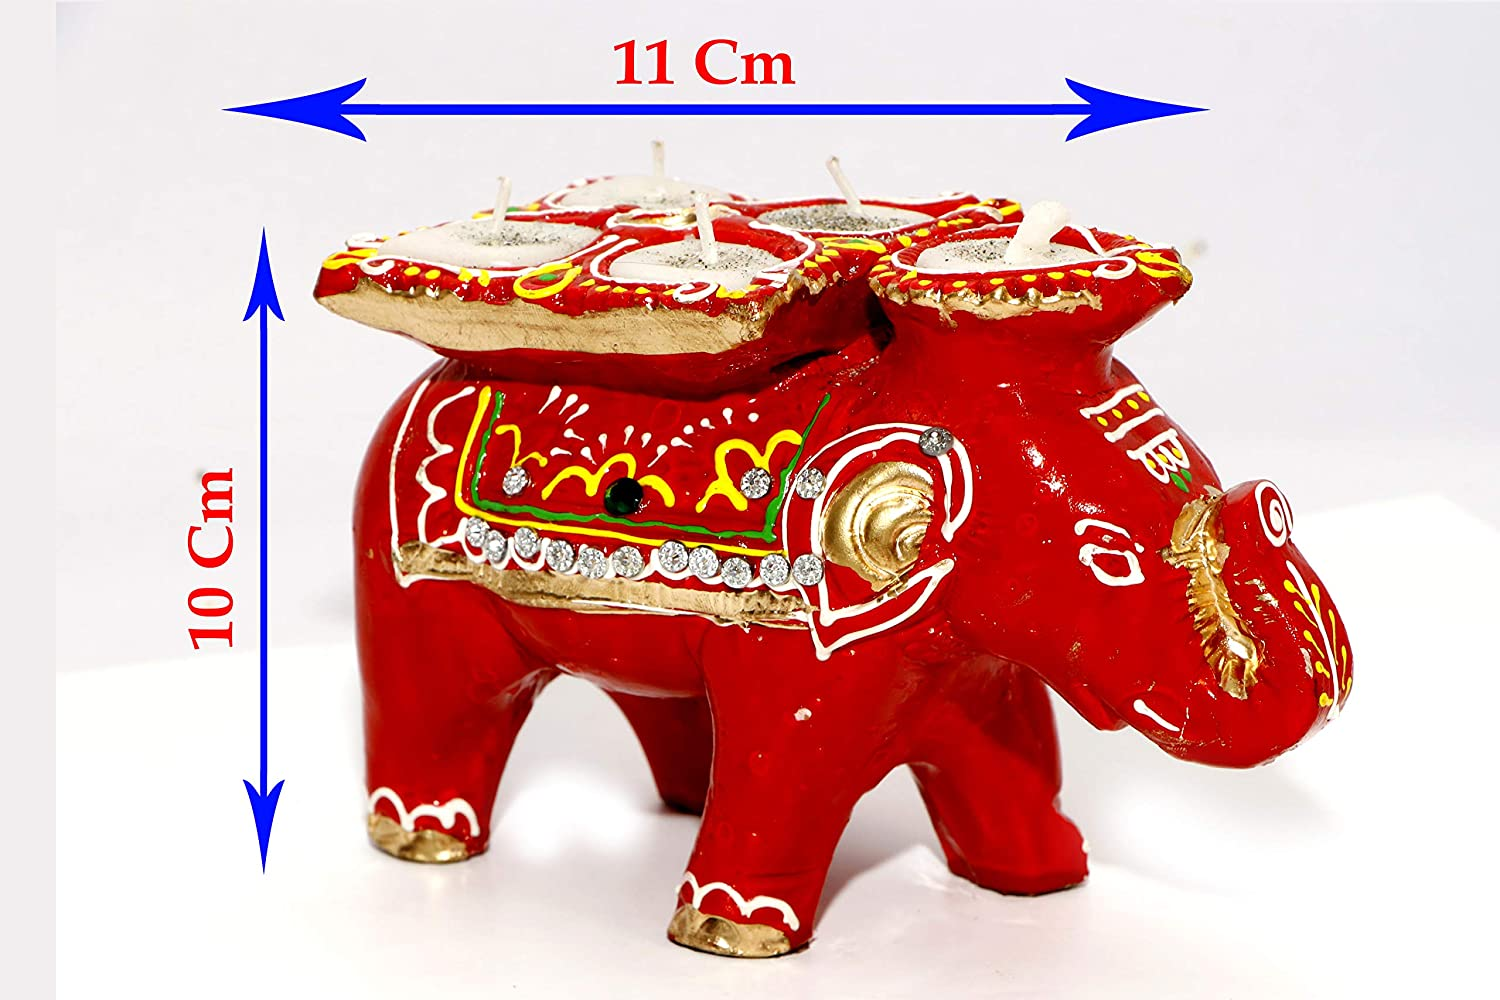 Tiny Souls Clay Decorative Diya Elephant Diwali Diya Puja Thali |Festivals Diya|Decorative Diya|Terracotta Elephant Diya Set Of 2 In Box (2)